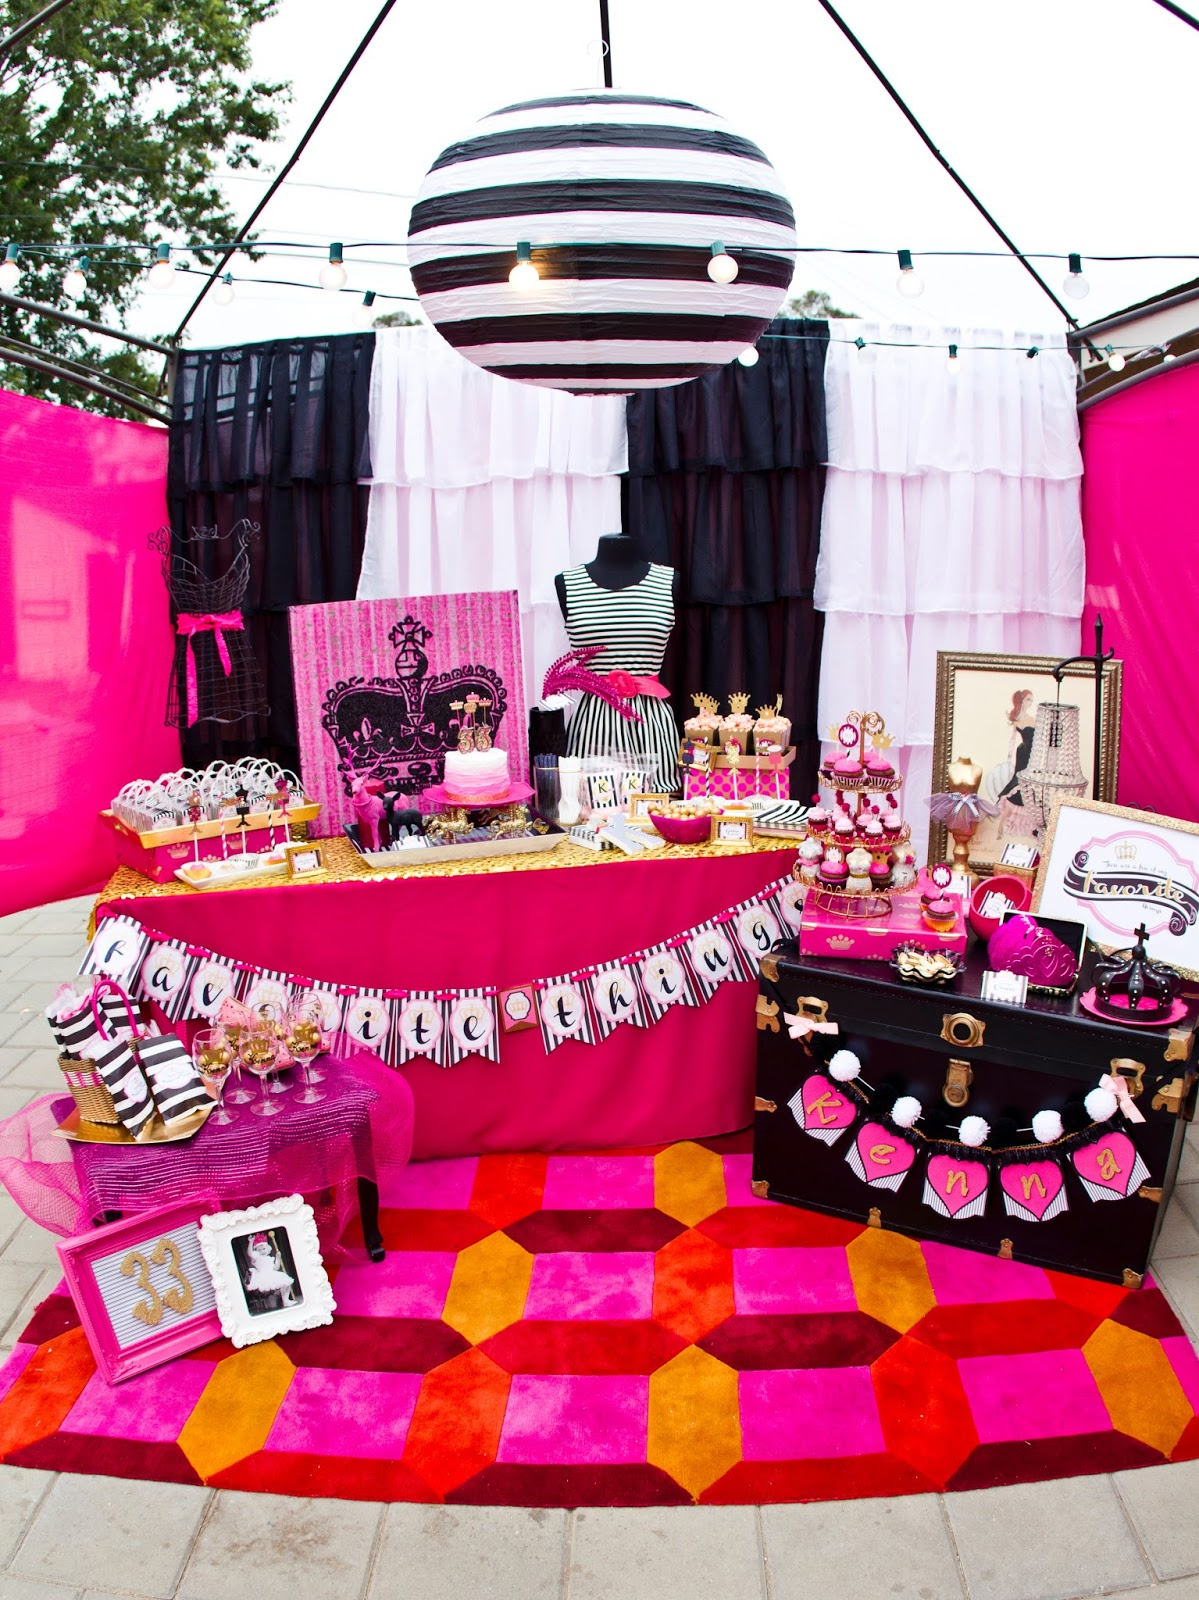 Miss Party Mom Kennas Favorite Things 33rd Birthday